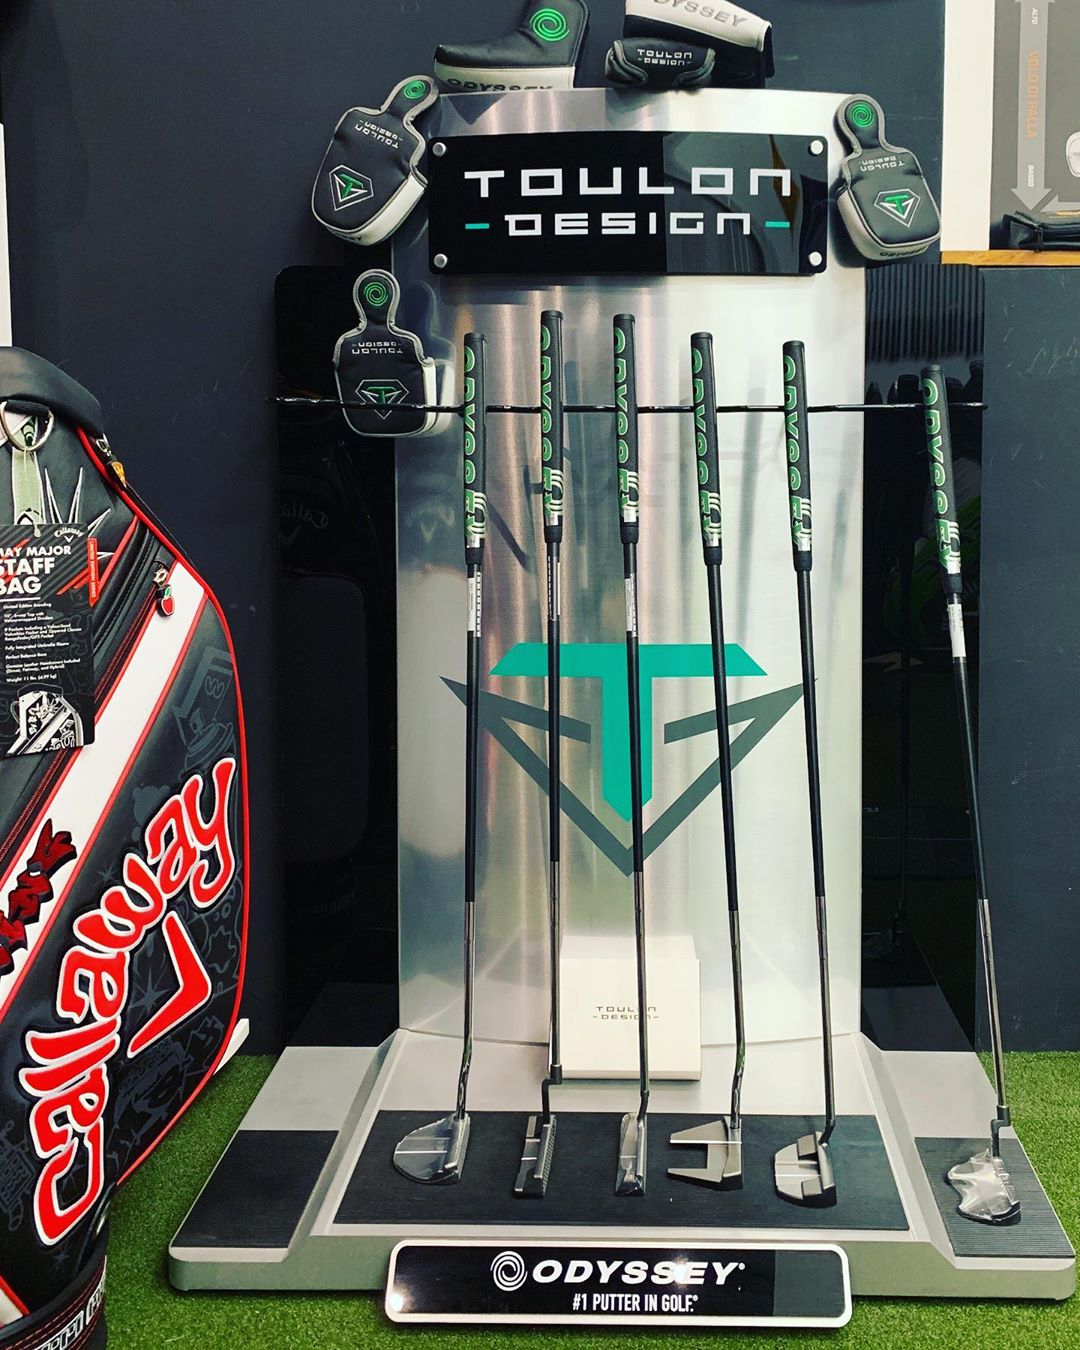 Hai mai provato un Toulon design con la tecnologia stroke lab?  stay tuned @toulondesign @odysseygolf @scienceandmotionsports